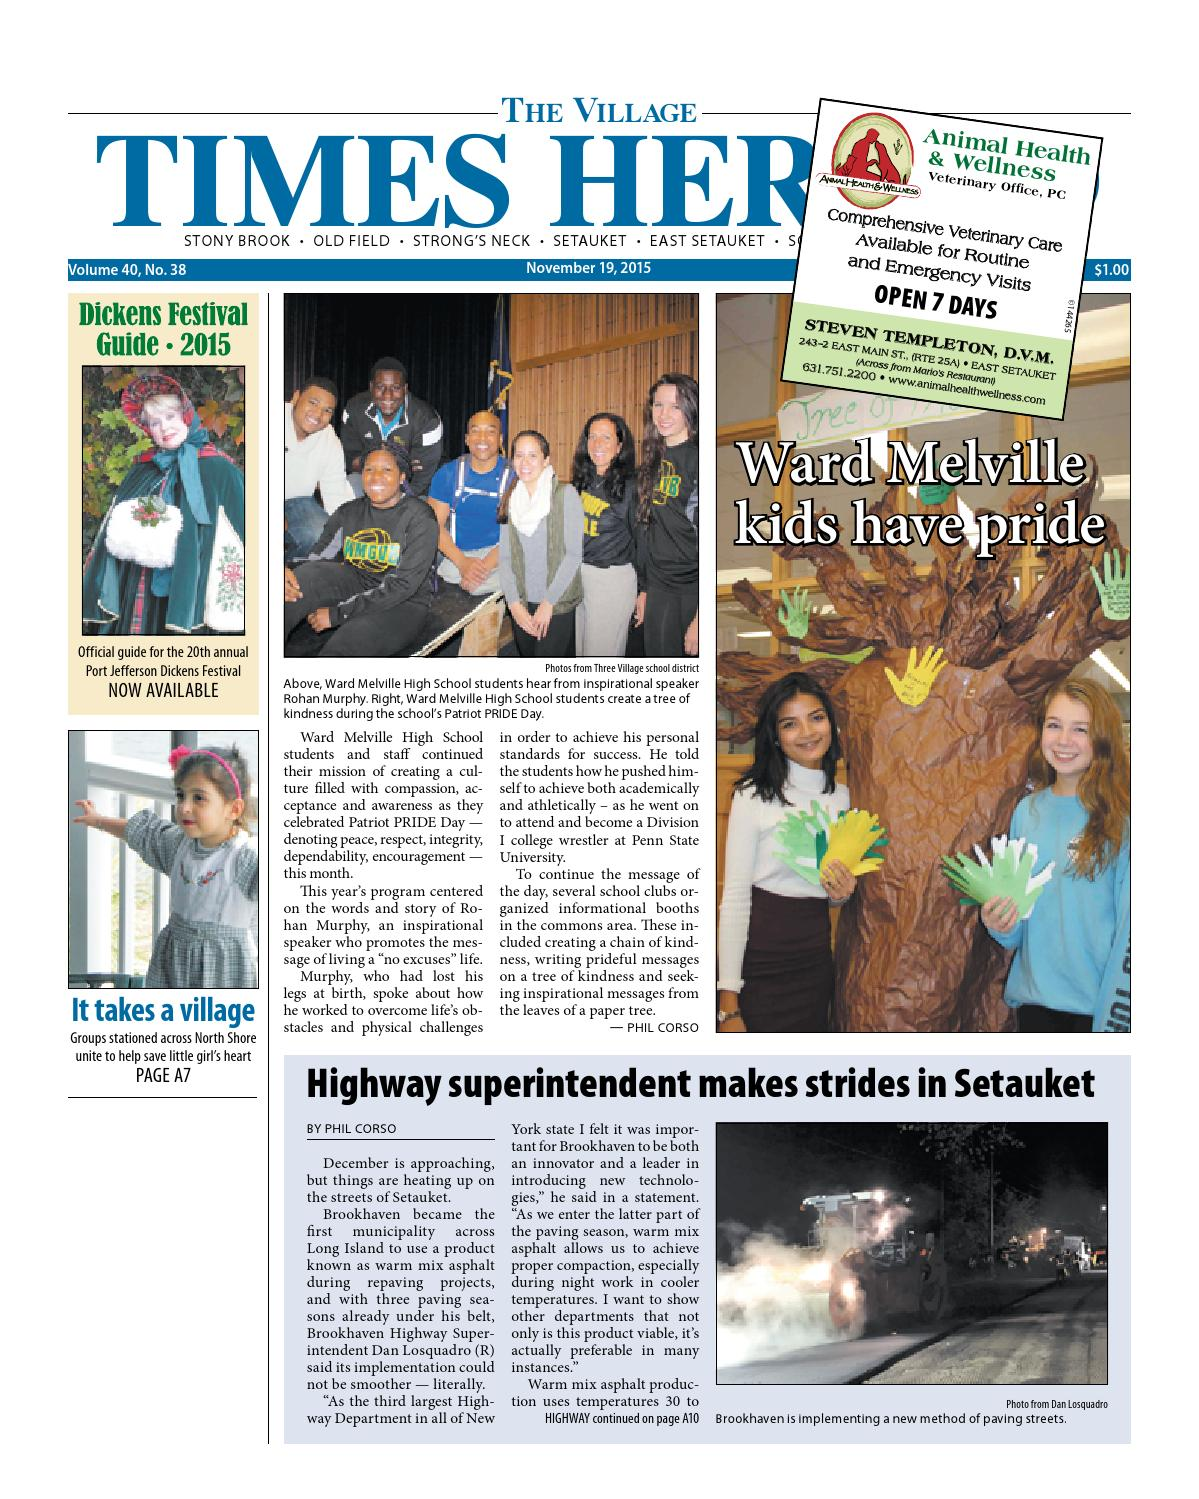 The Village Times Herald - November 19, 2015 by TBR News Media - issuu